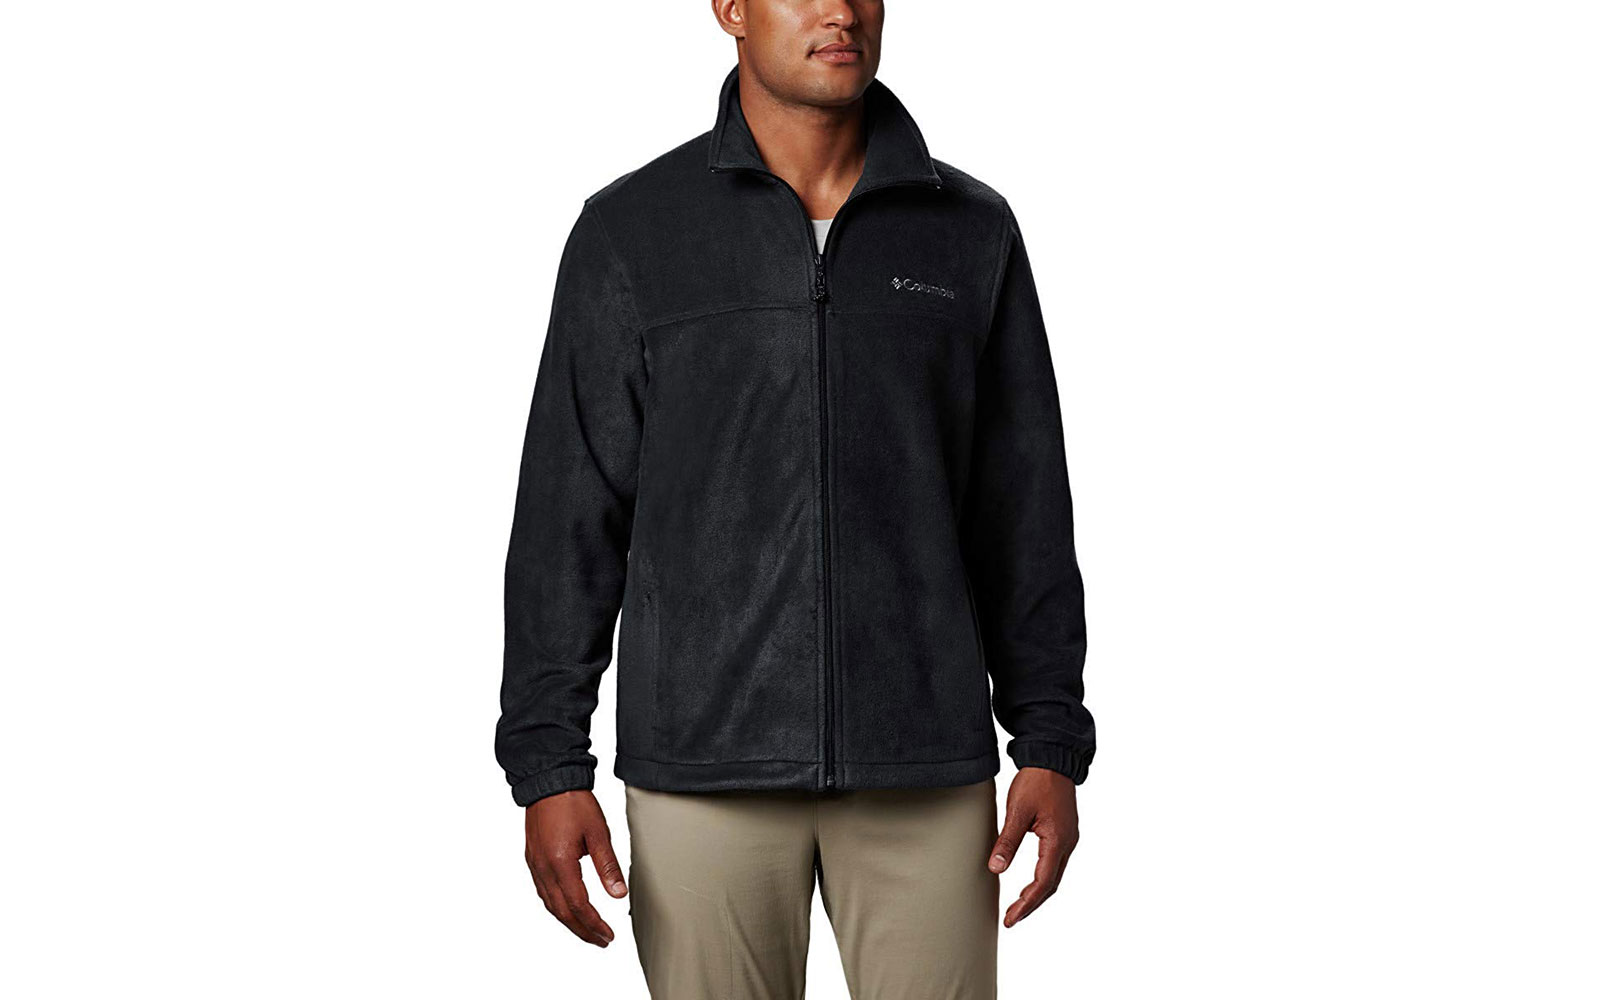 Columbia Steens Mountain Full Zip Jacket